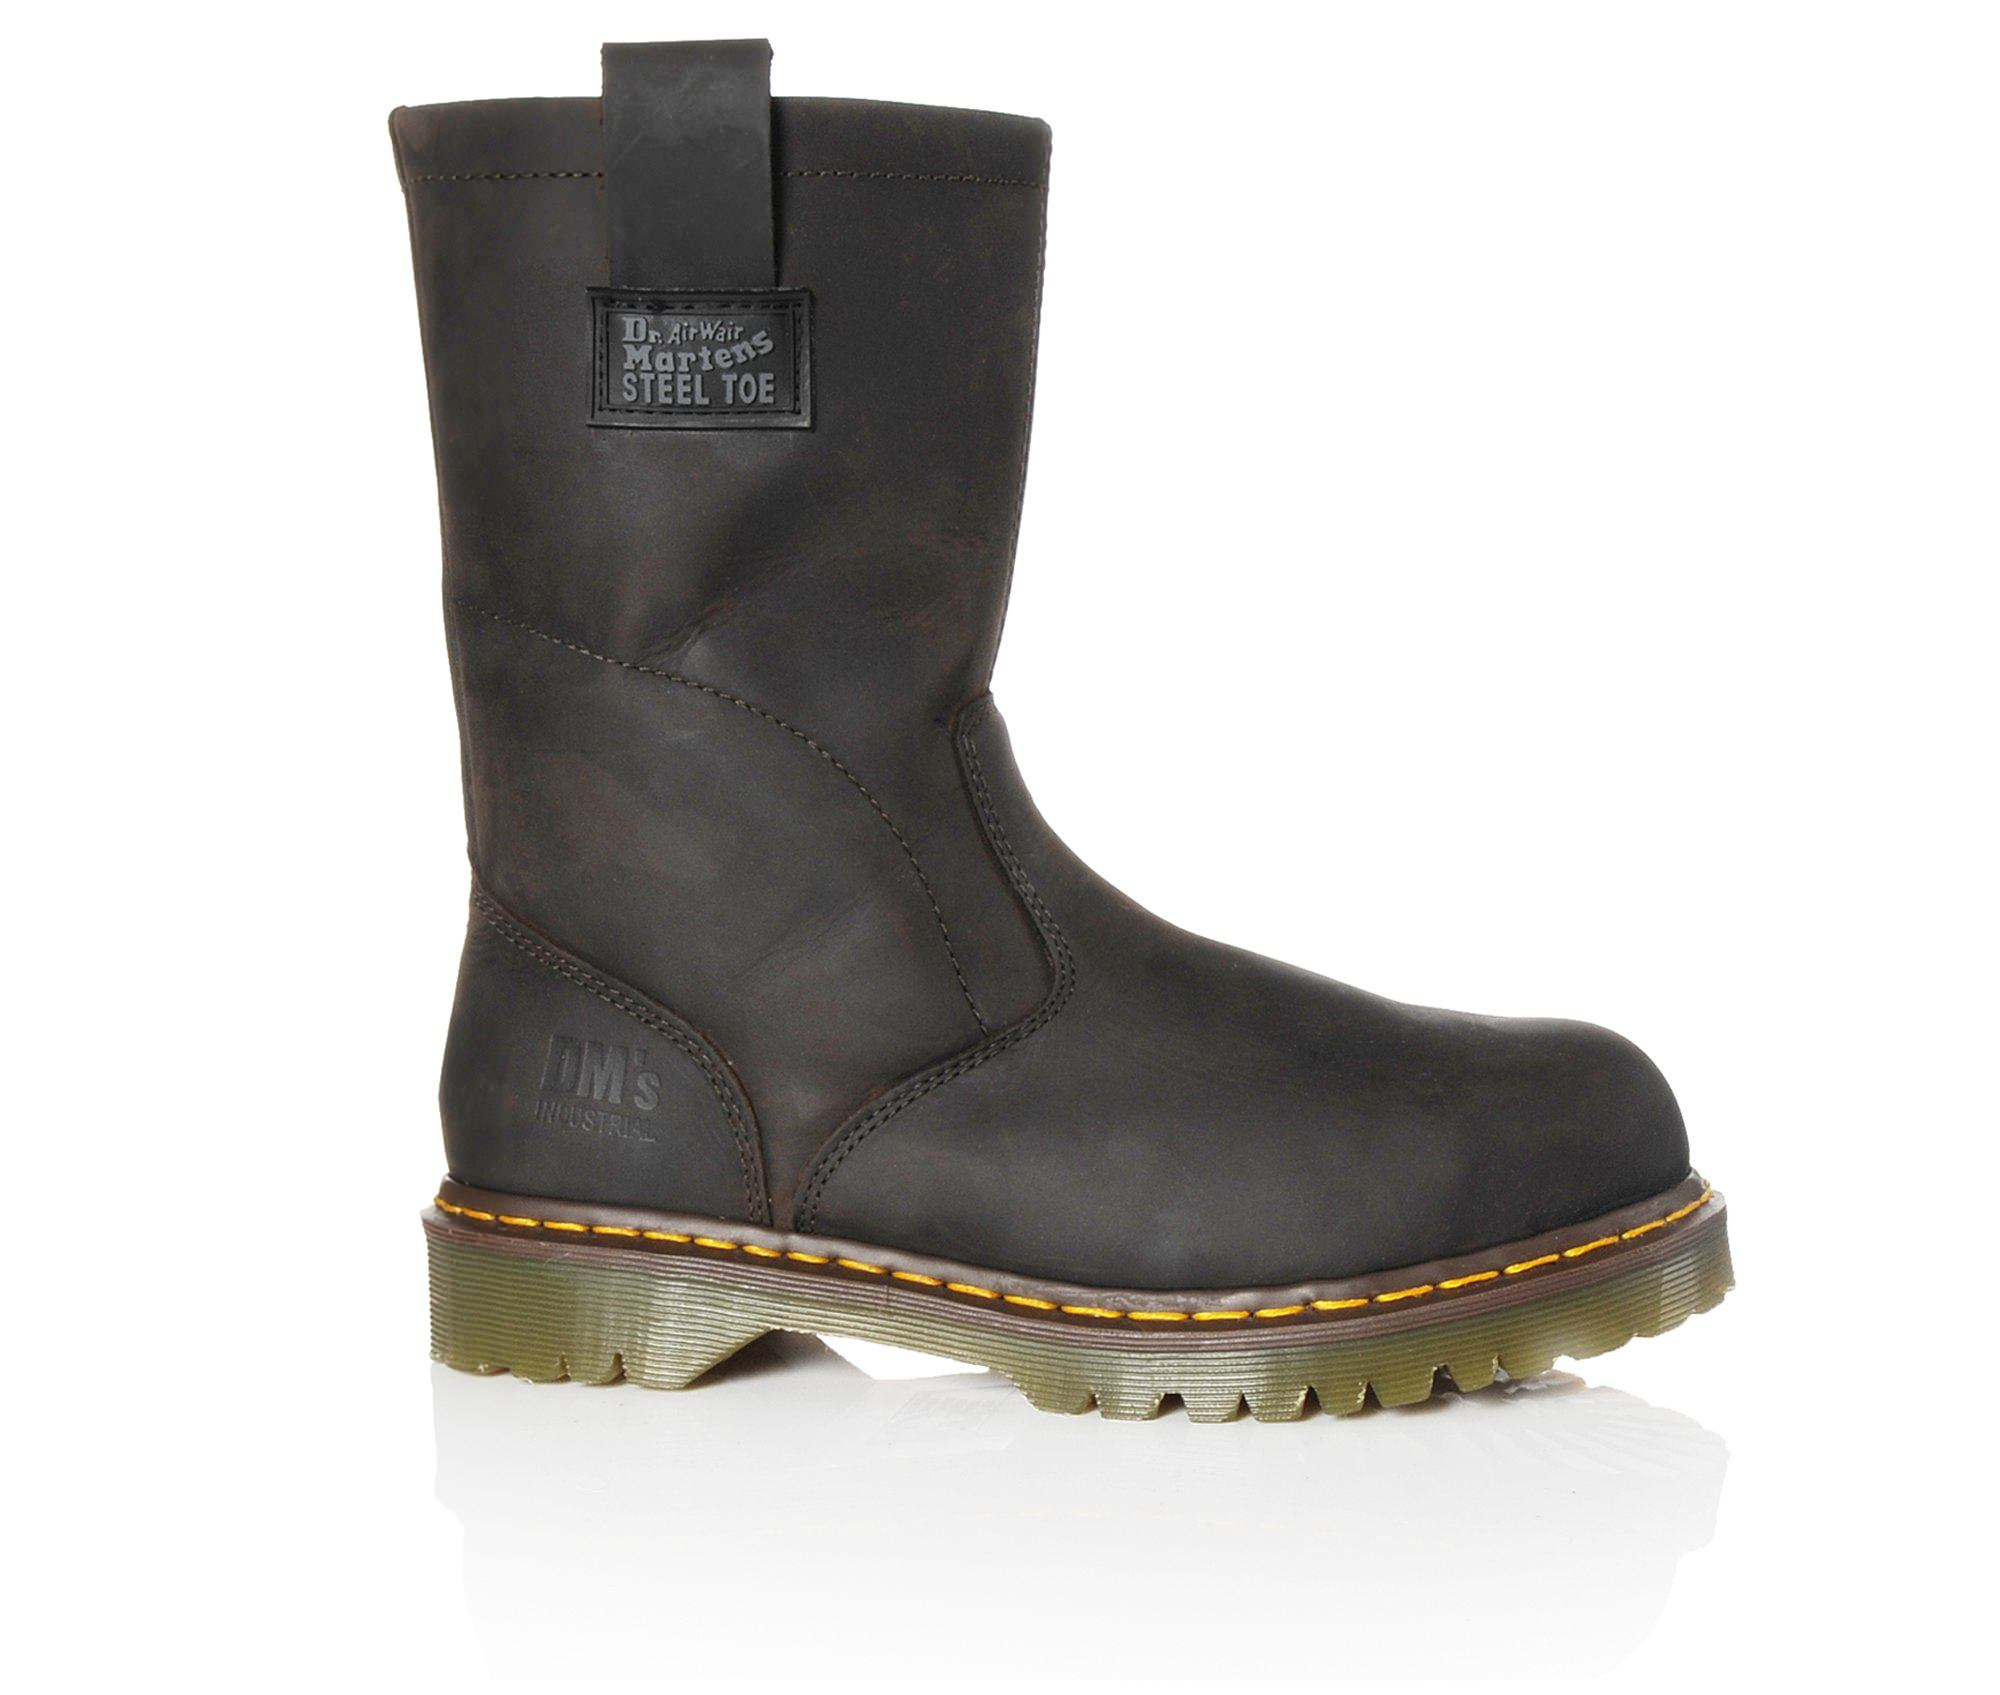 Dr. Martens Industrial Icon Wellington 2295 Steel Toe Men's Boots (Brown Leather)